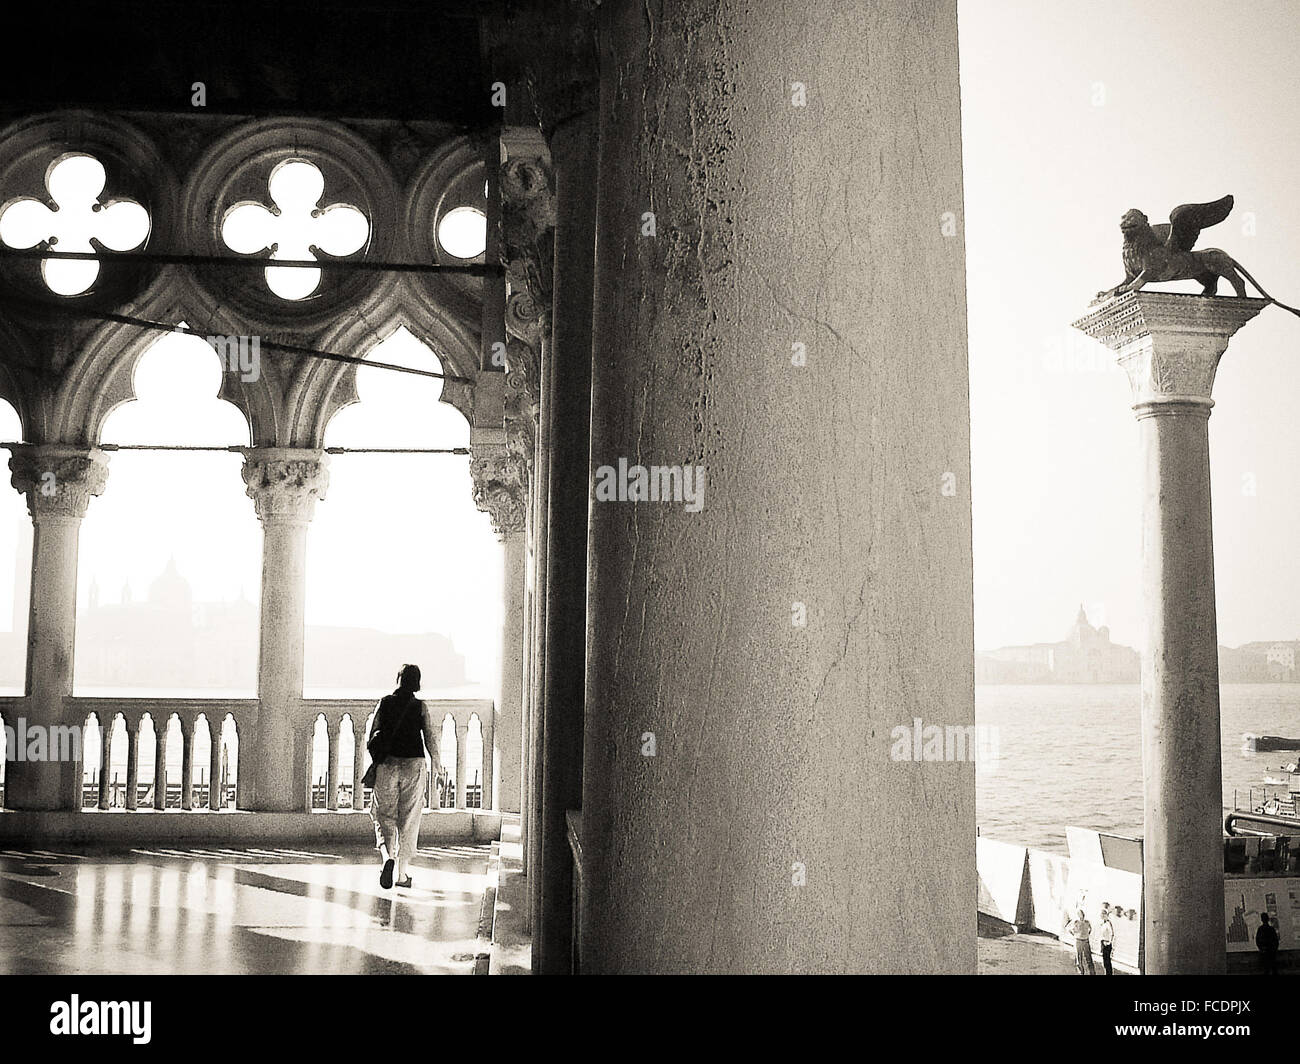 Full Length Rear View Of Woman Walking In Historic Building - Stock Image